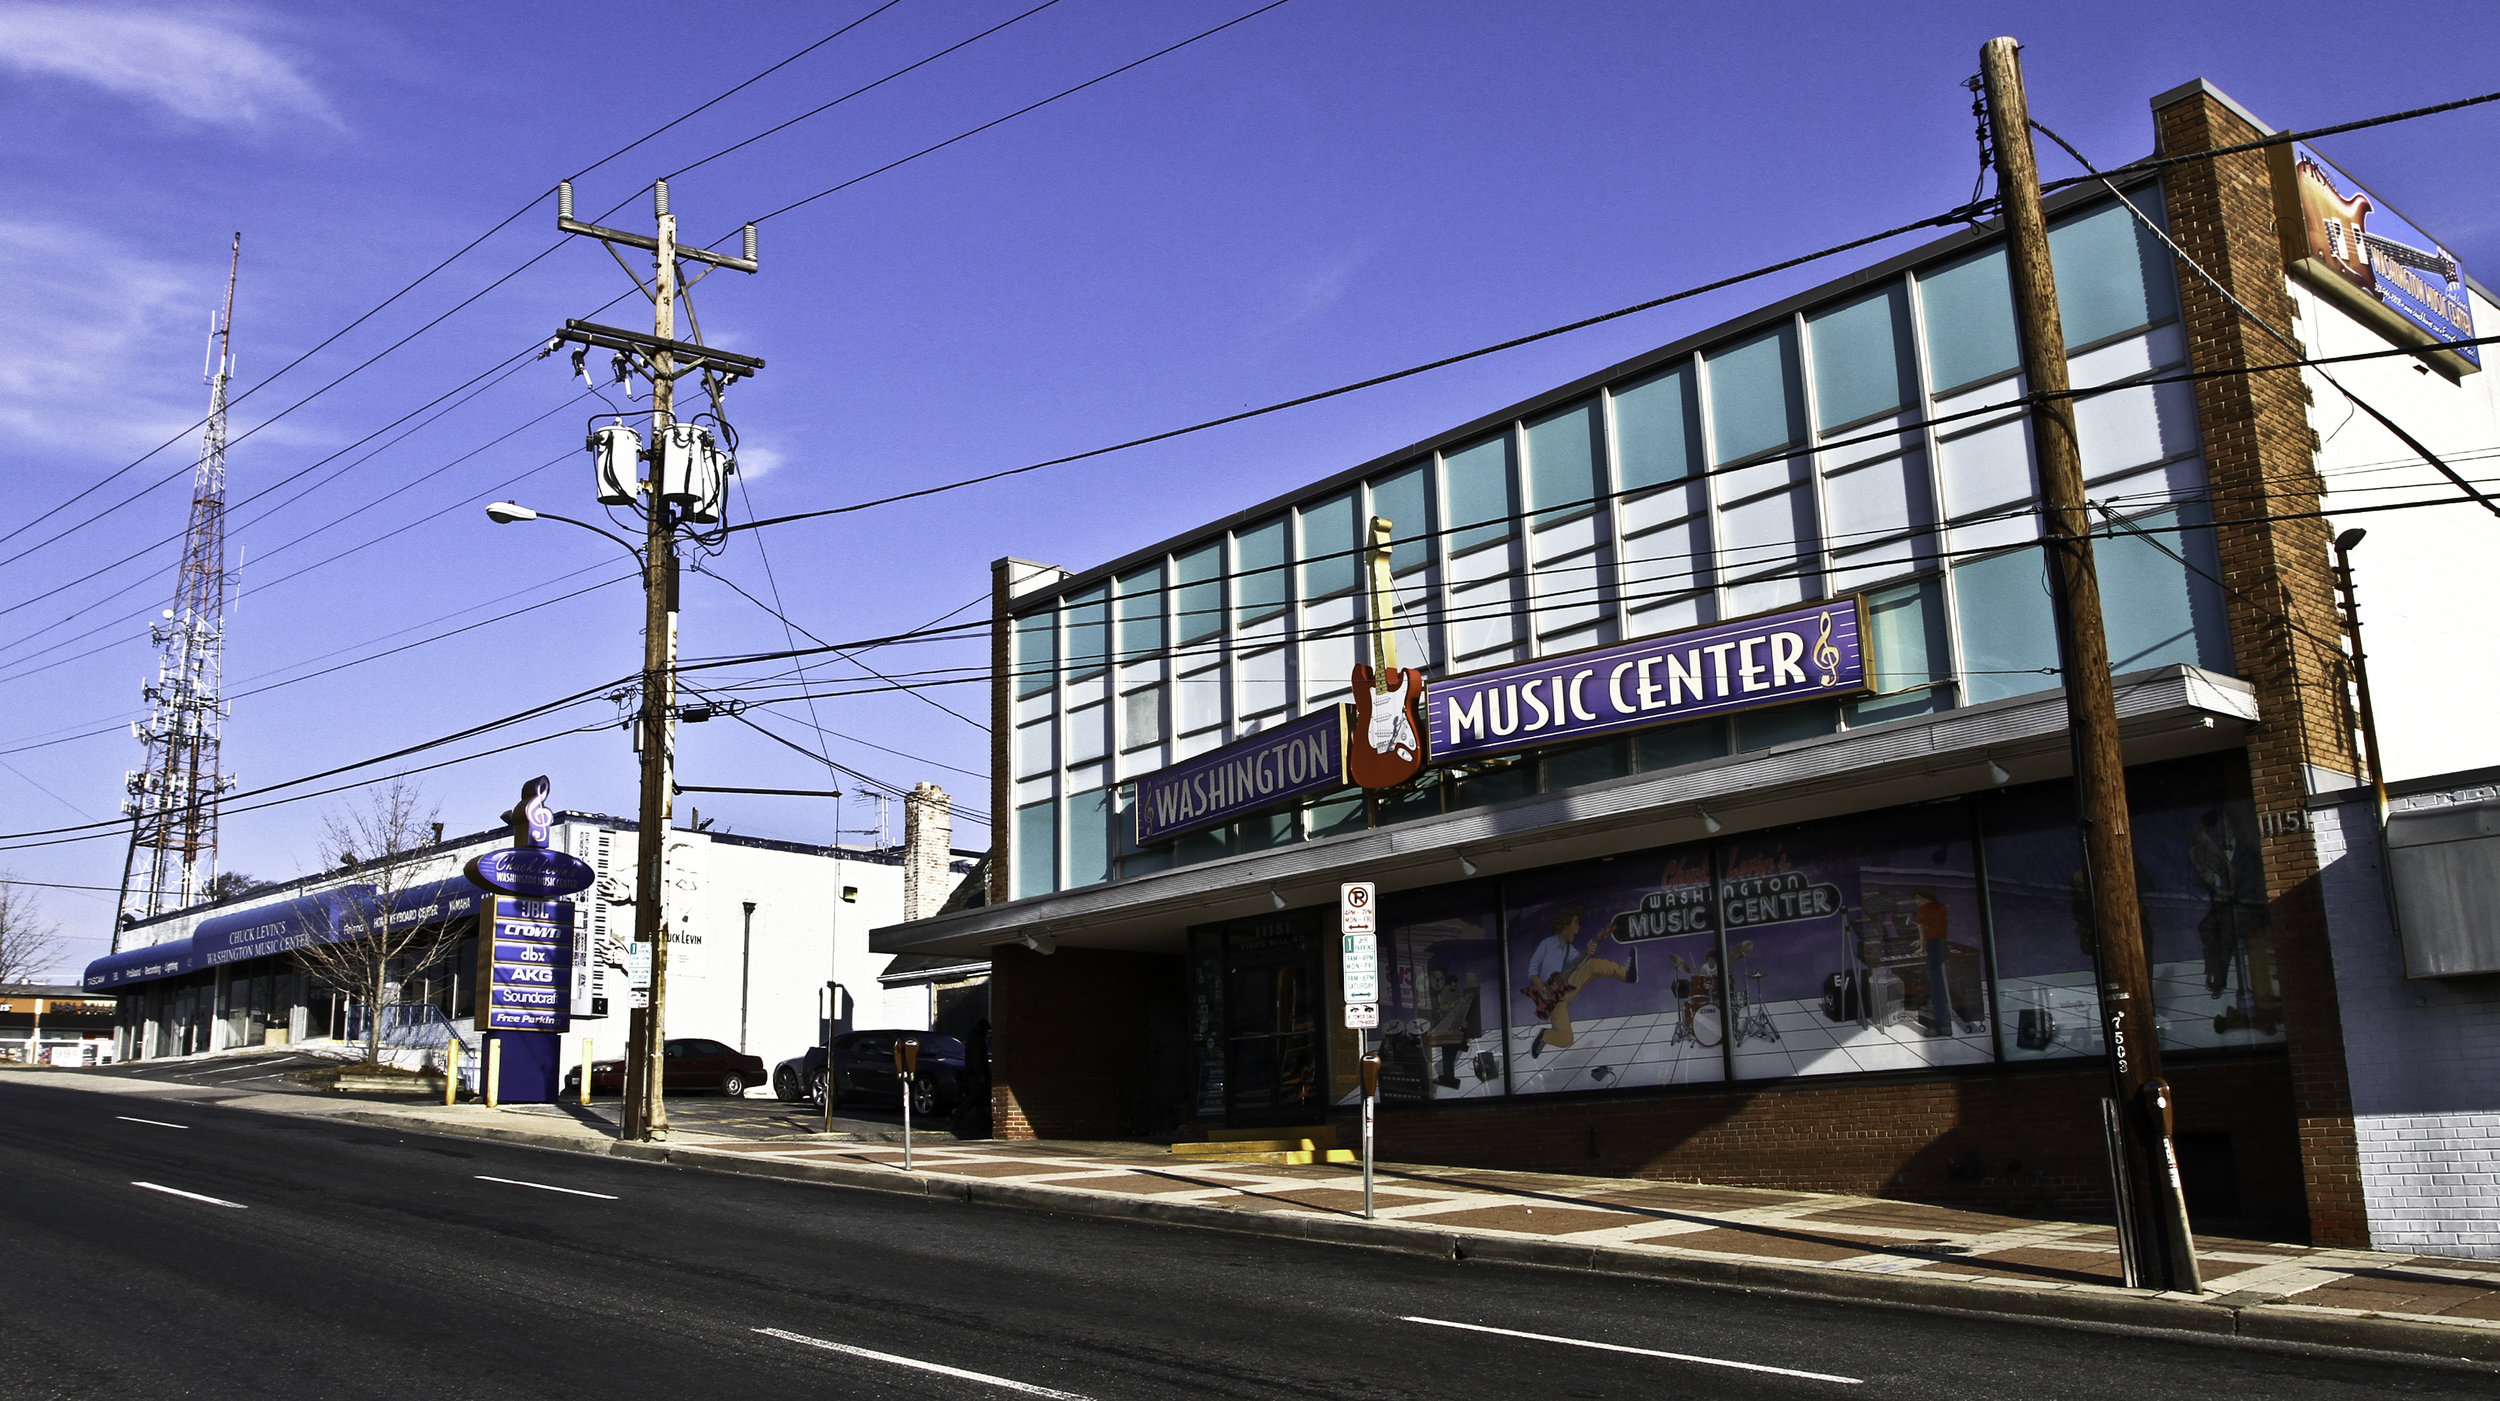 - Chuck Levin's Washington Music Center main building in Wheaton, MD, before new construction